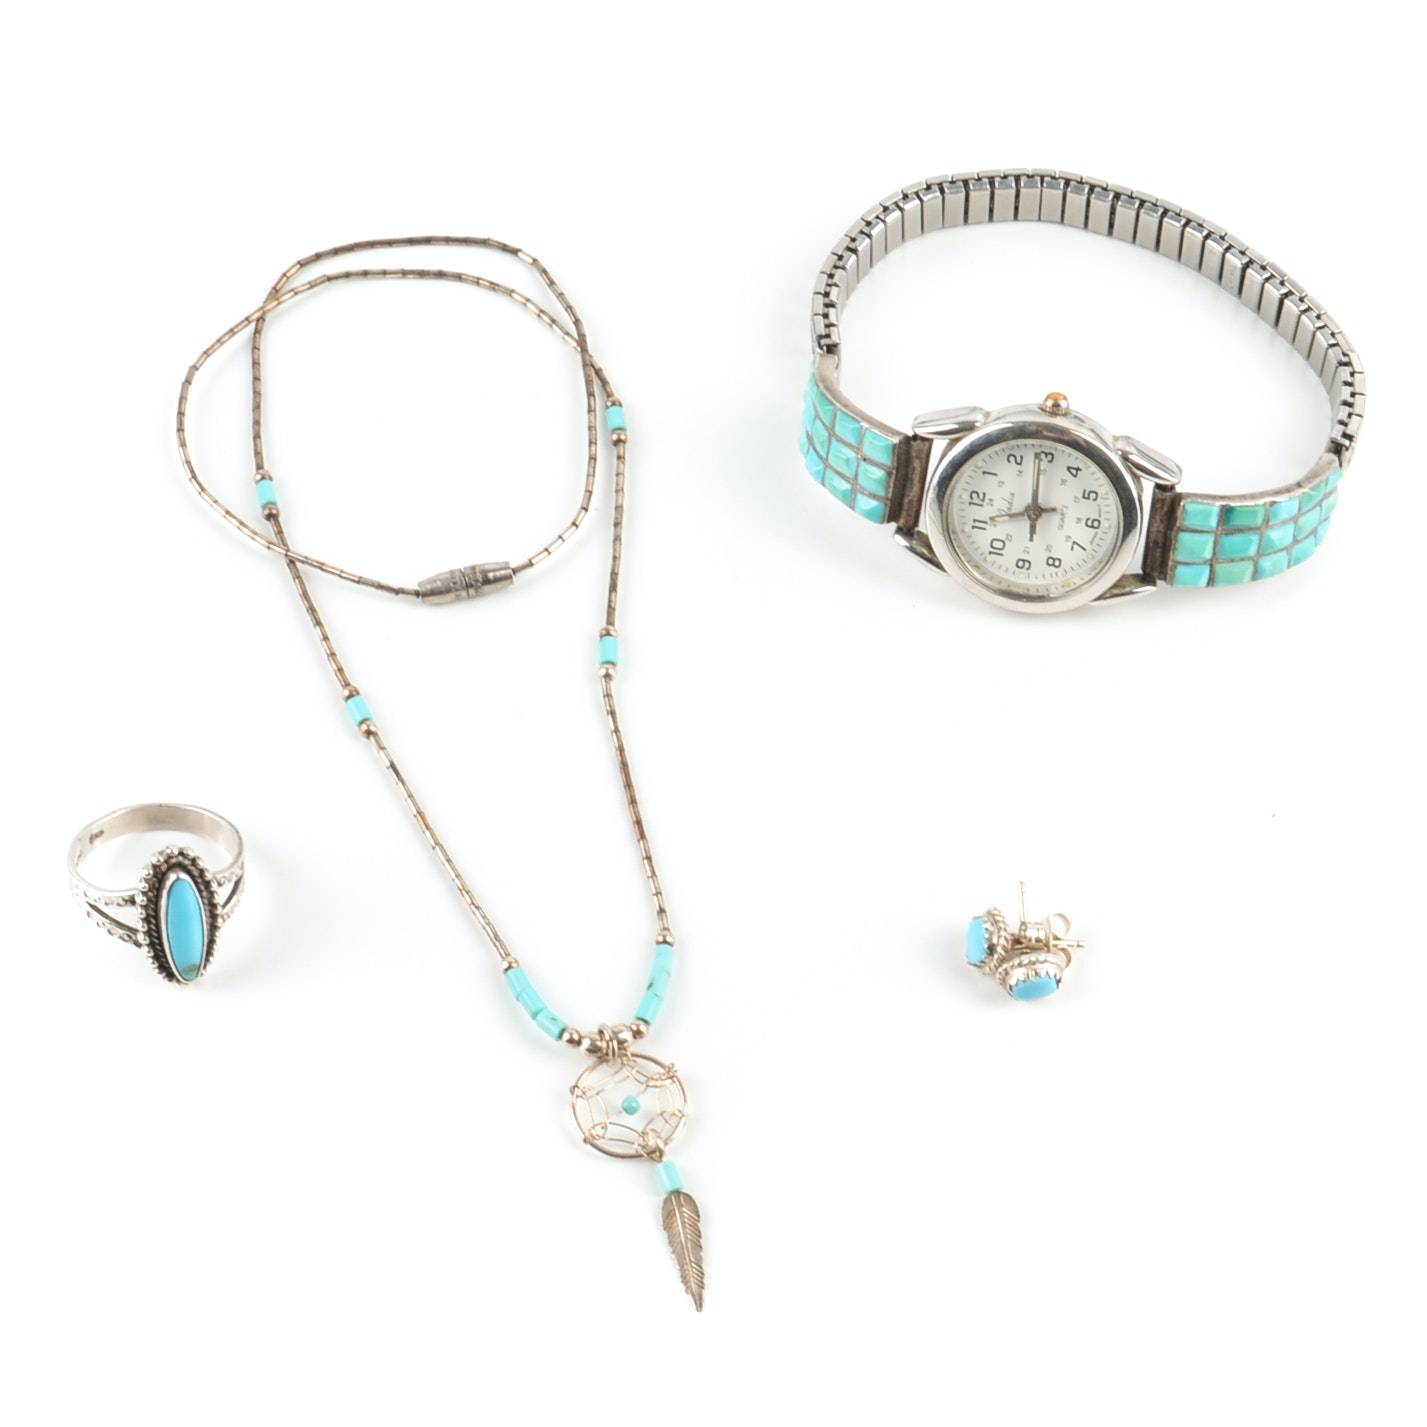 Sterling Silver Turquoise Necklace, Wristwatch, Earrings and Ring